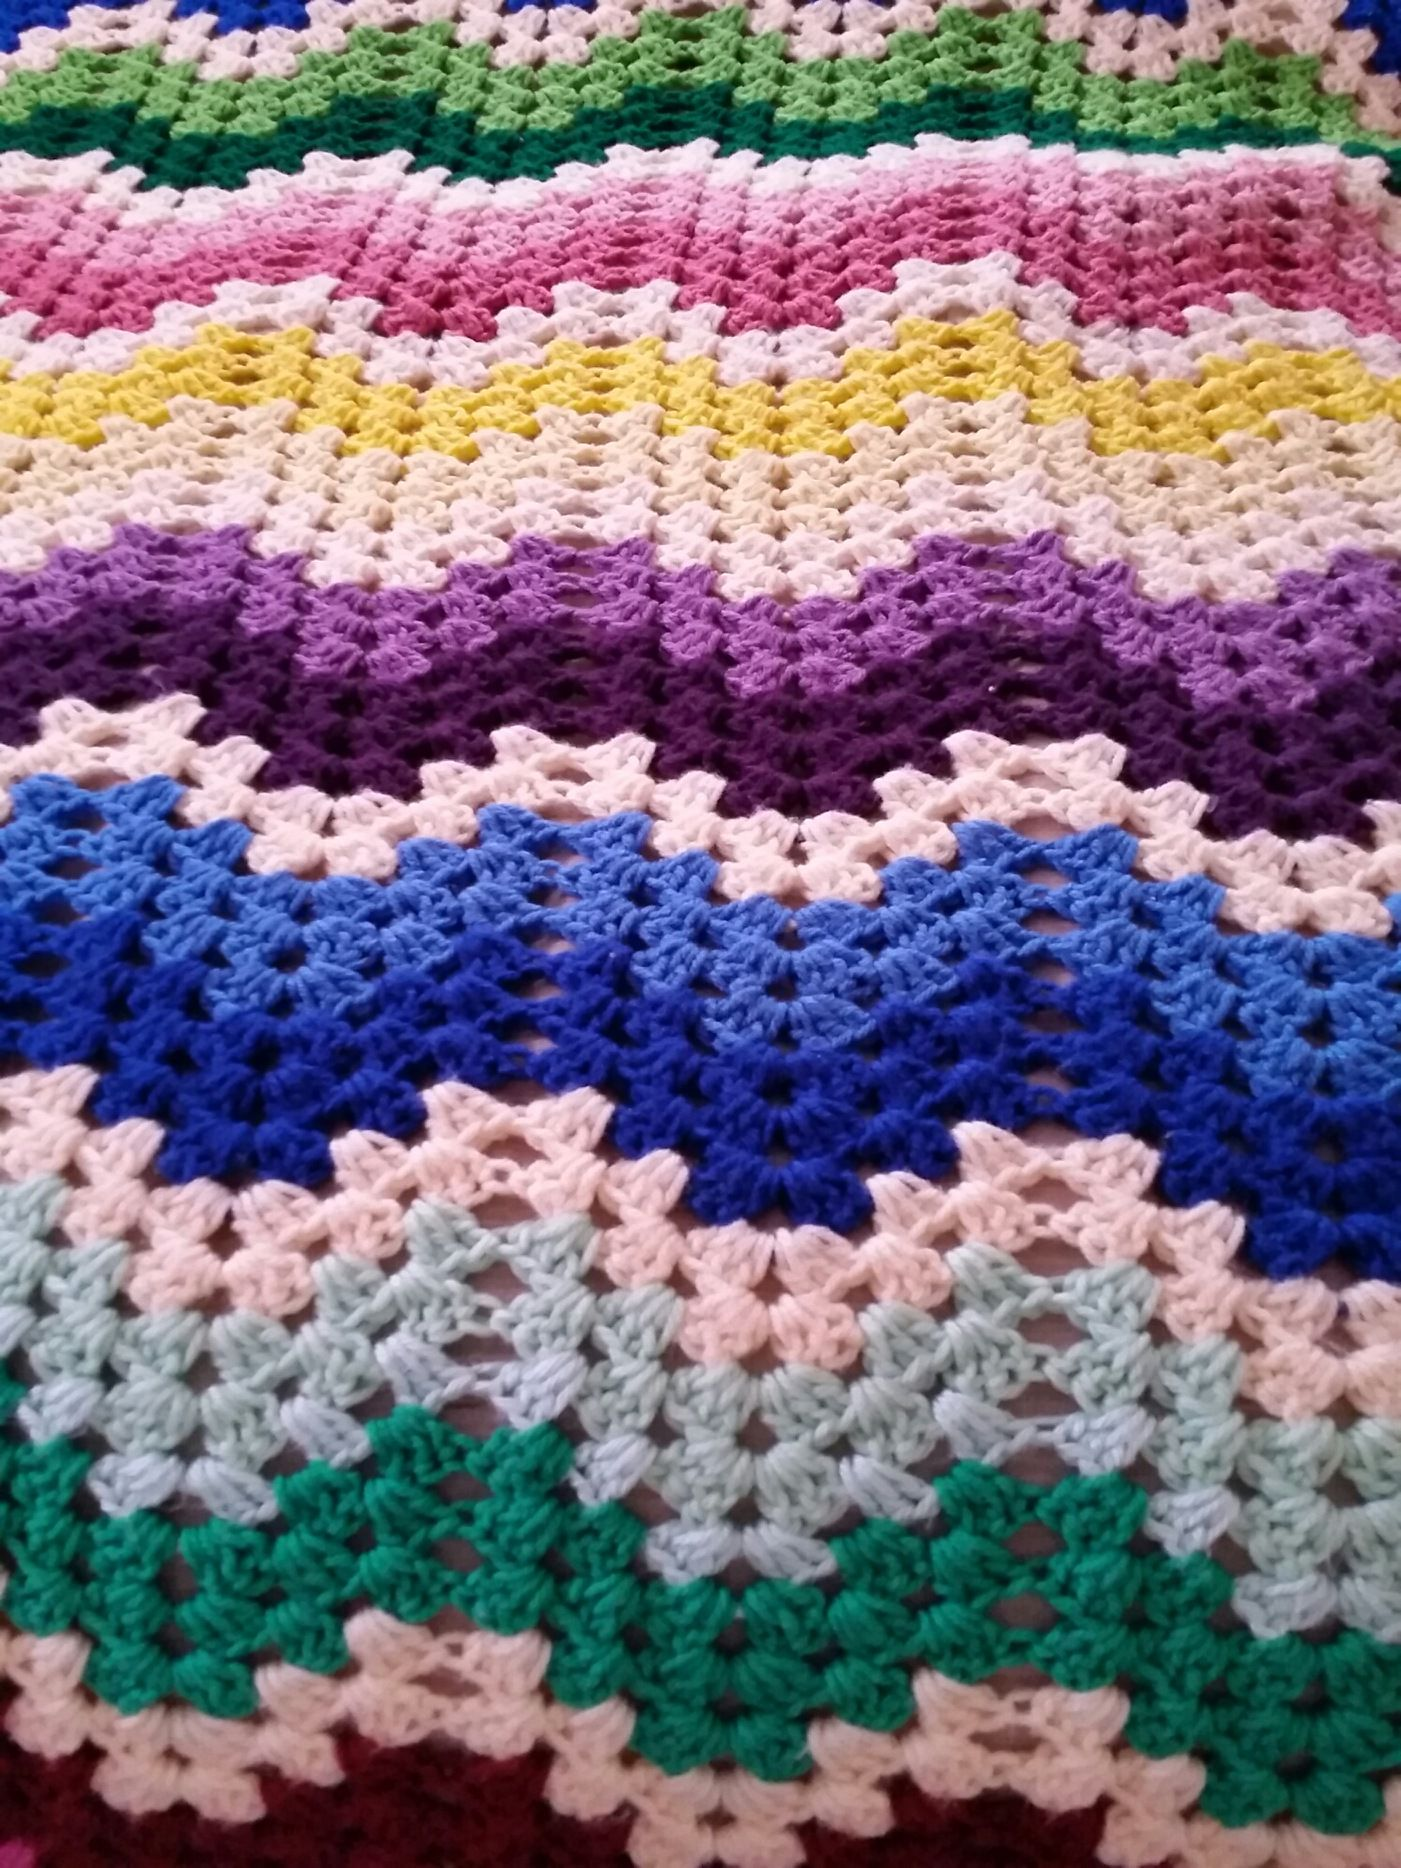 Granny ripple afghan | crochet afghan pattern and more | Pinterest ...